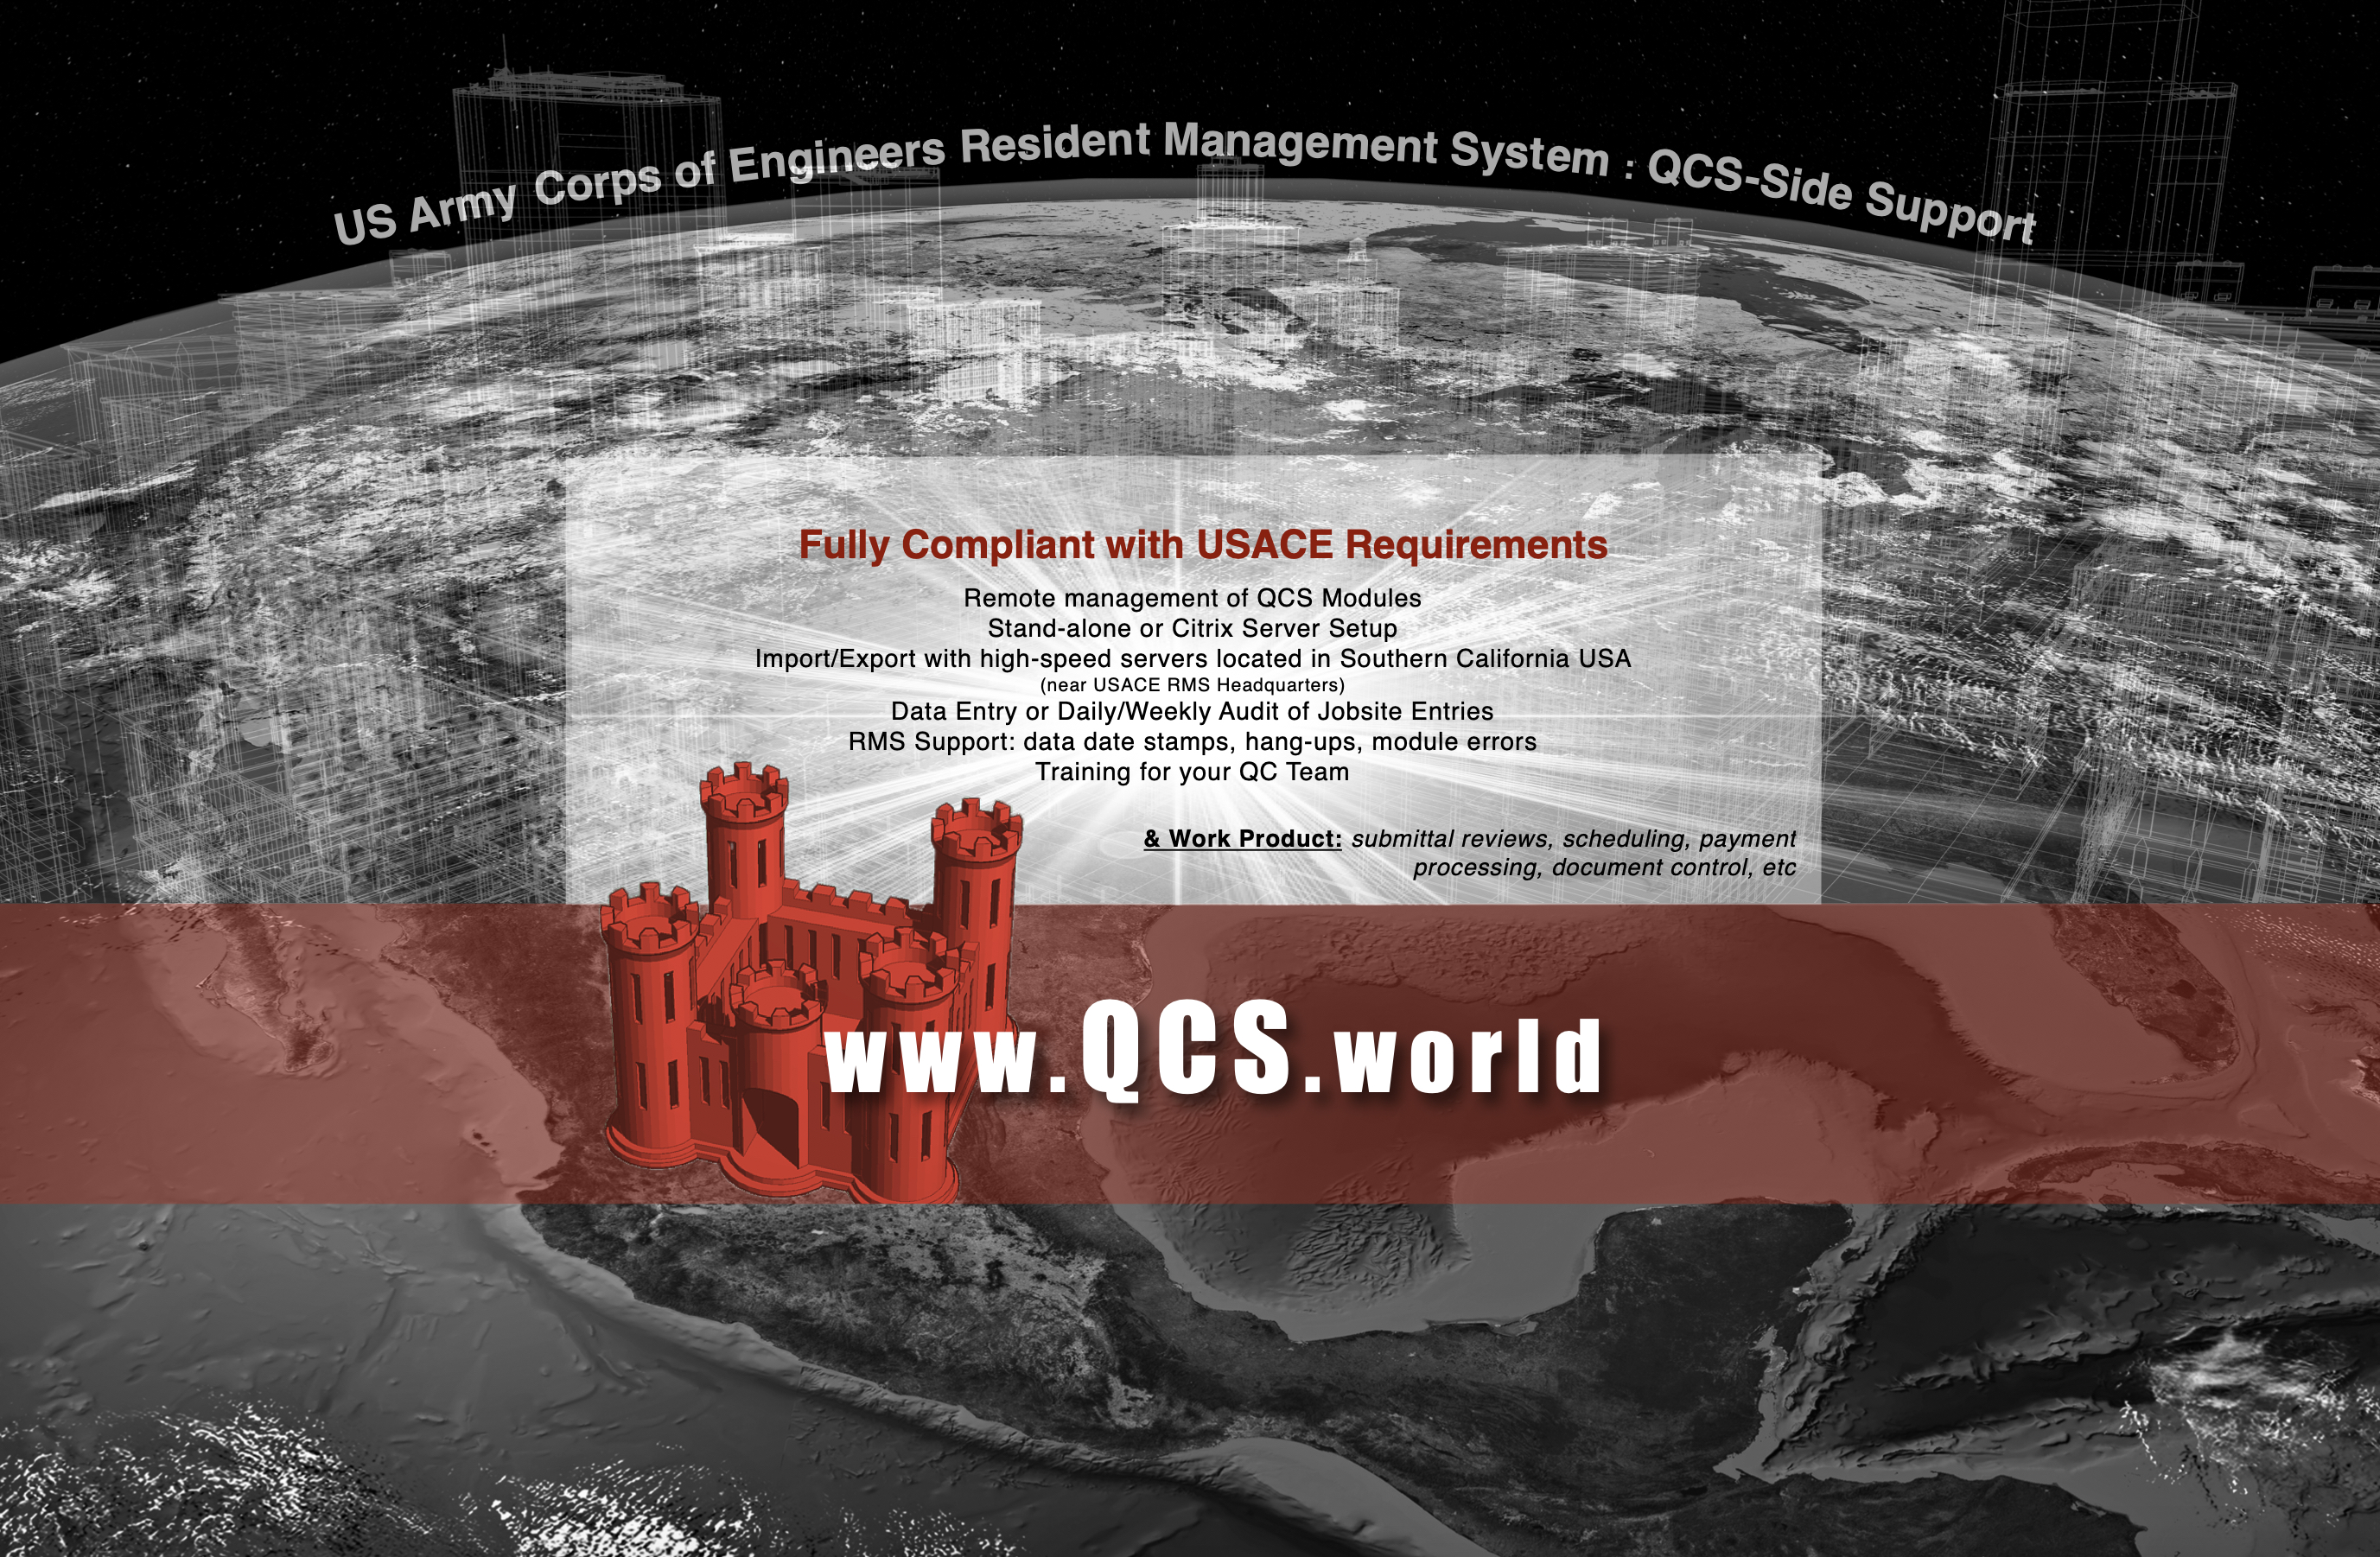 Supporting your team on implementation and execution of USACE RMS/QCS software requirements